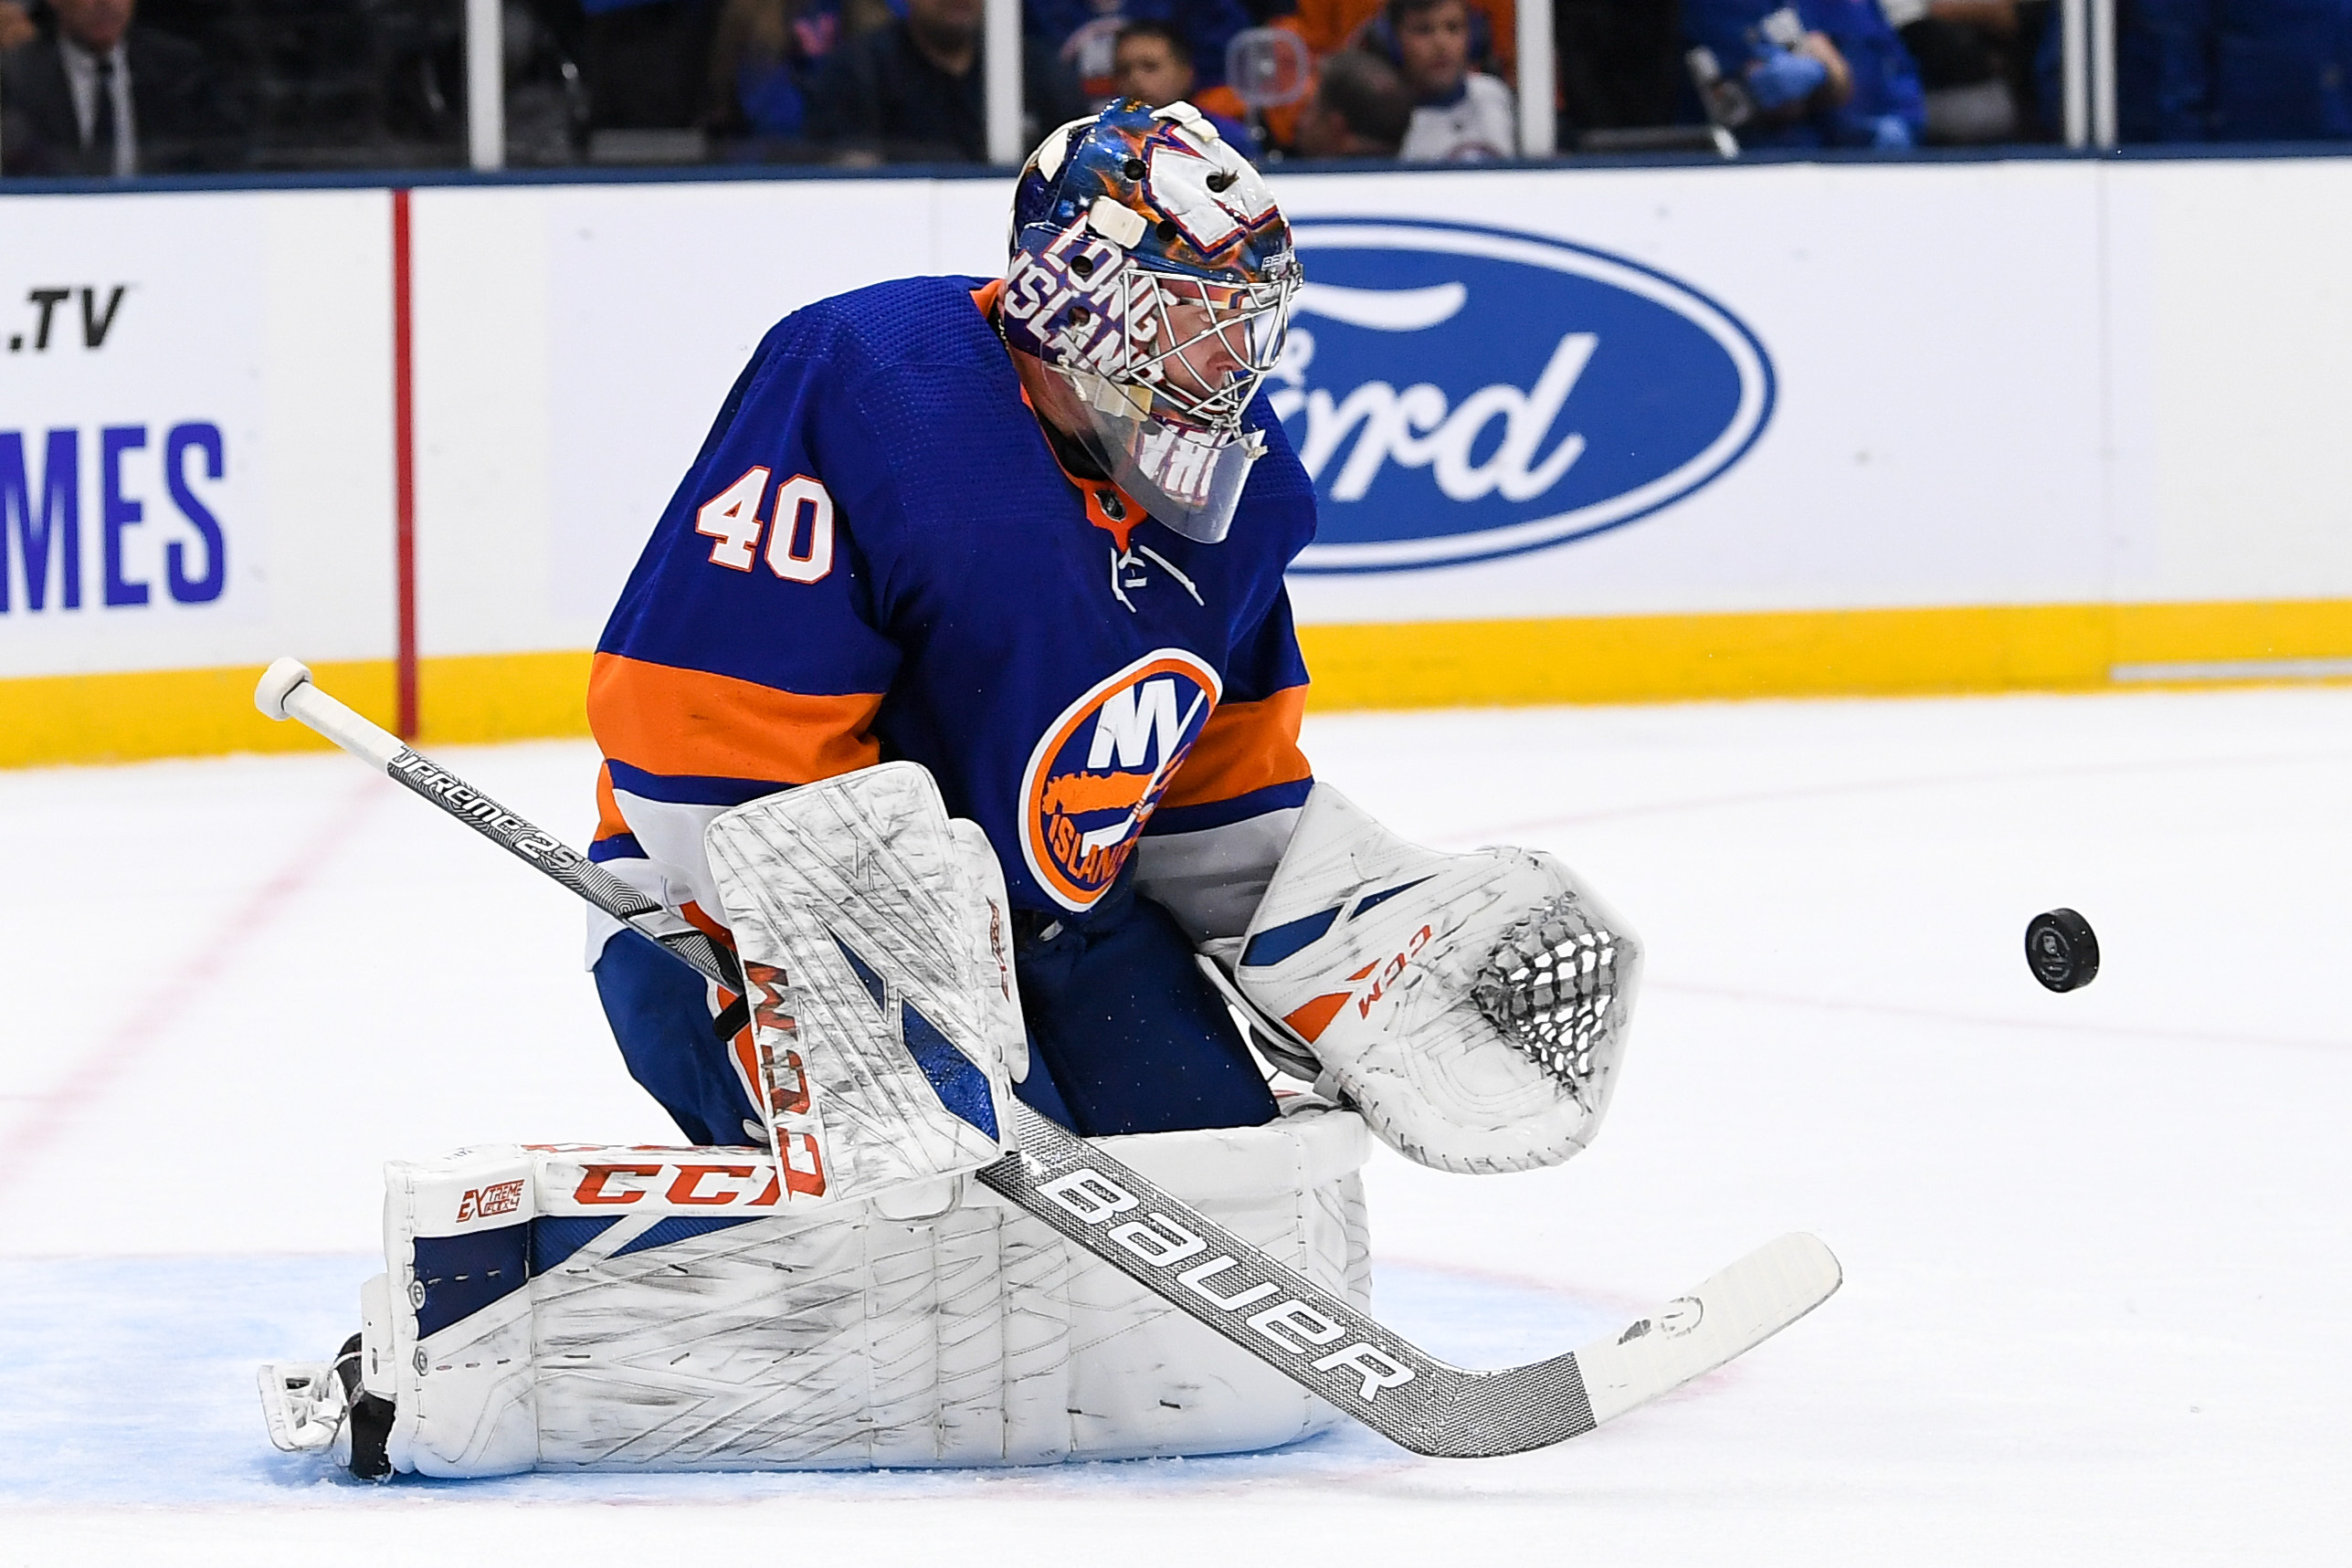 Oct 4, 2019; Uniondale, NY, USA; New York Islanders goaltender Semyon Varlamov (40) makes a save against the against the Washington Capitals during the first period at Nassau Veterans Memorial Coliseum. Mandatory Credit: Dennis Schneidler-USA TODAY Sports